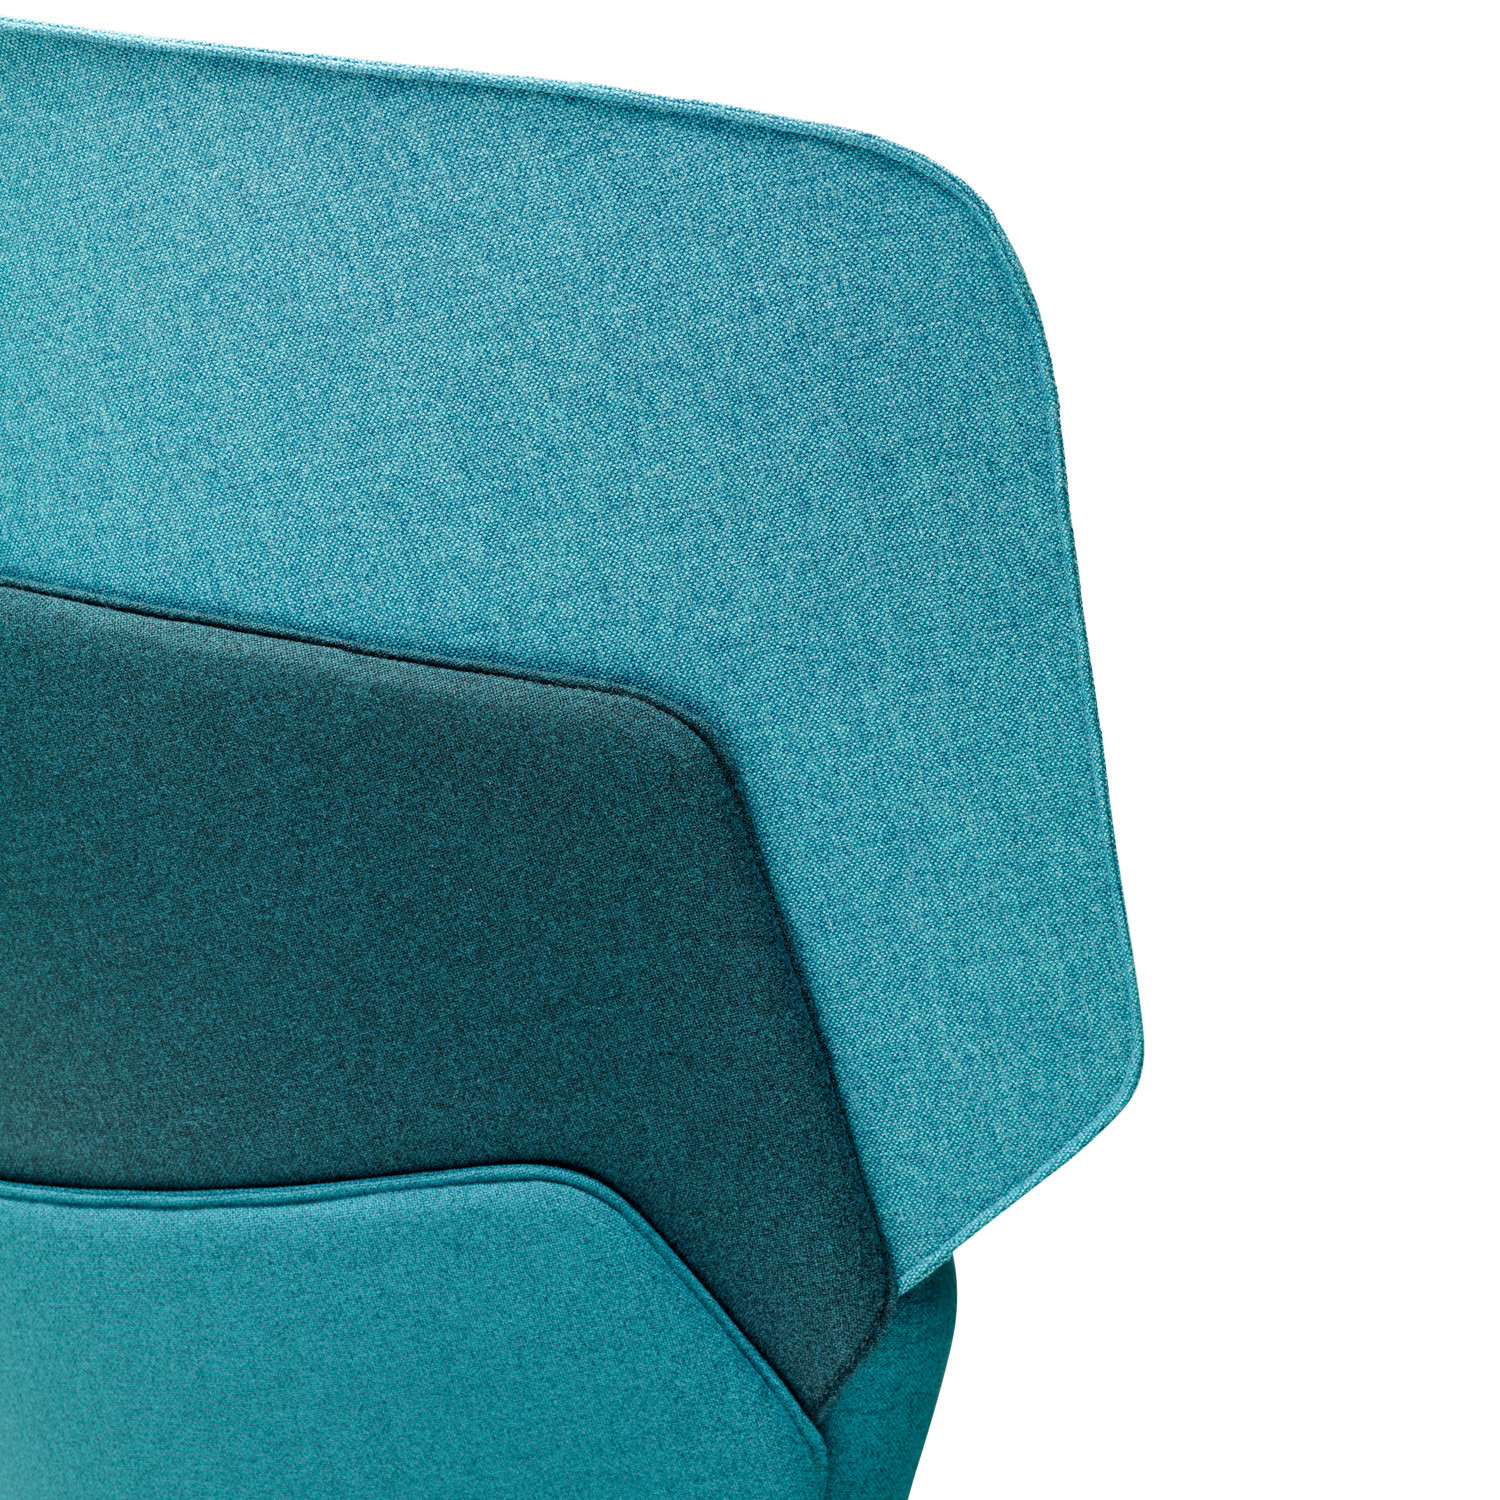 Layer Easy Chairs Detailed